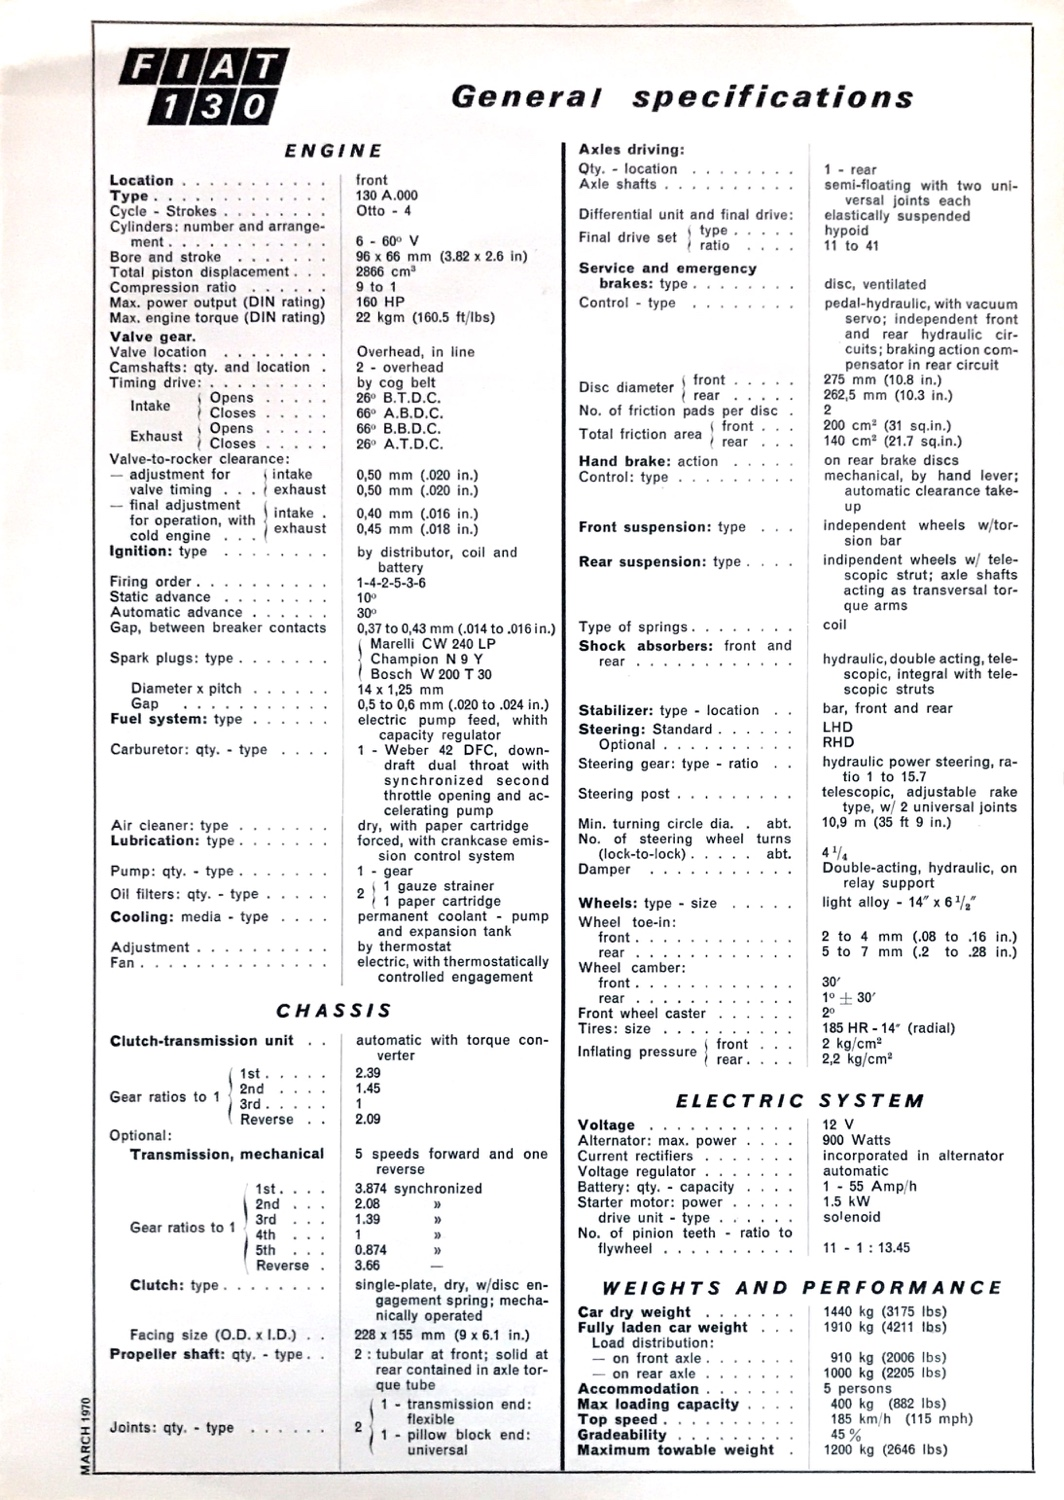 Fiat 130 2800 Technical Specifications